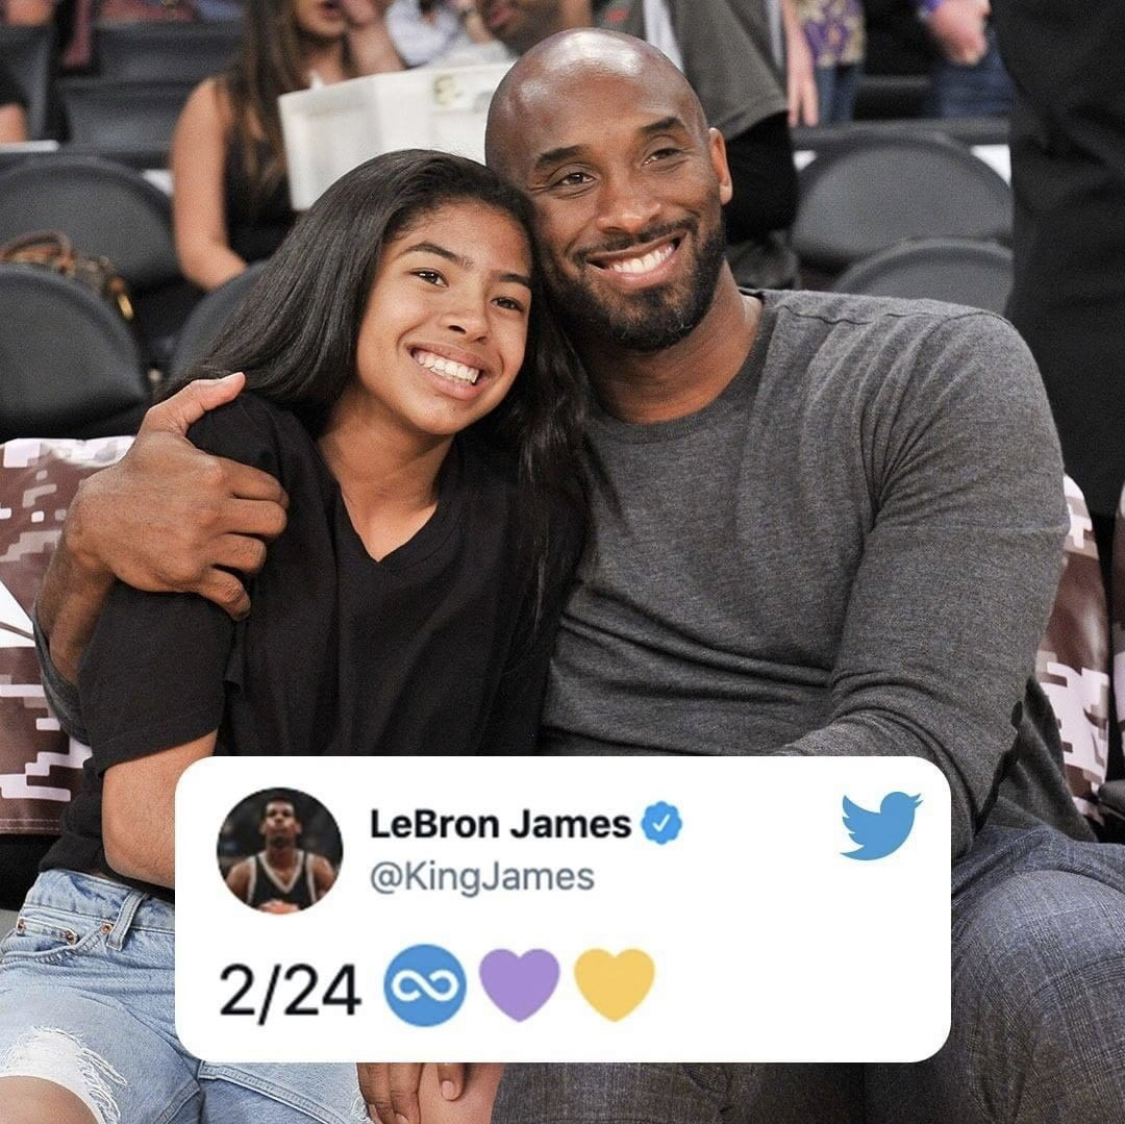 Replying to @ESPNLosAngeles: 2/24  One year ago today, we came together to celebrate the life of Kobe and Gigi Bryant 💜💛